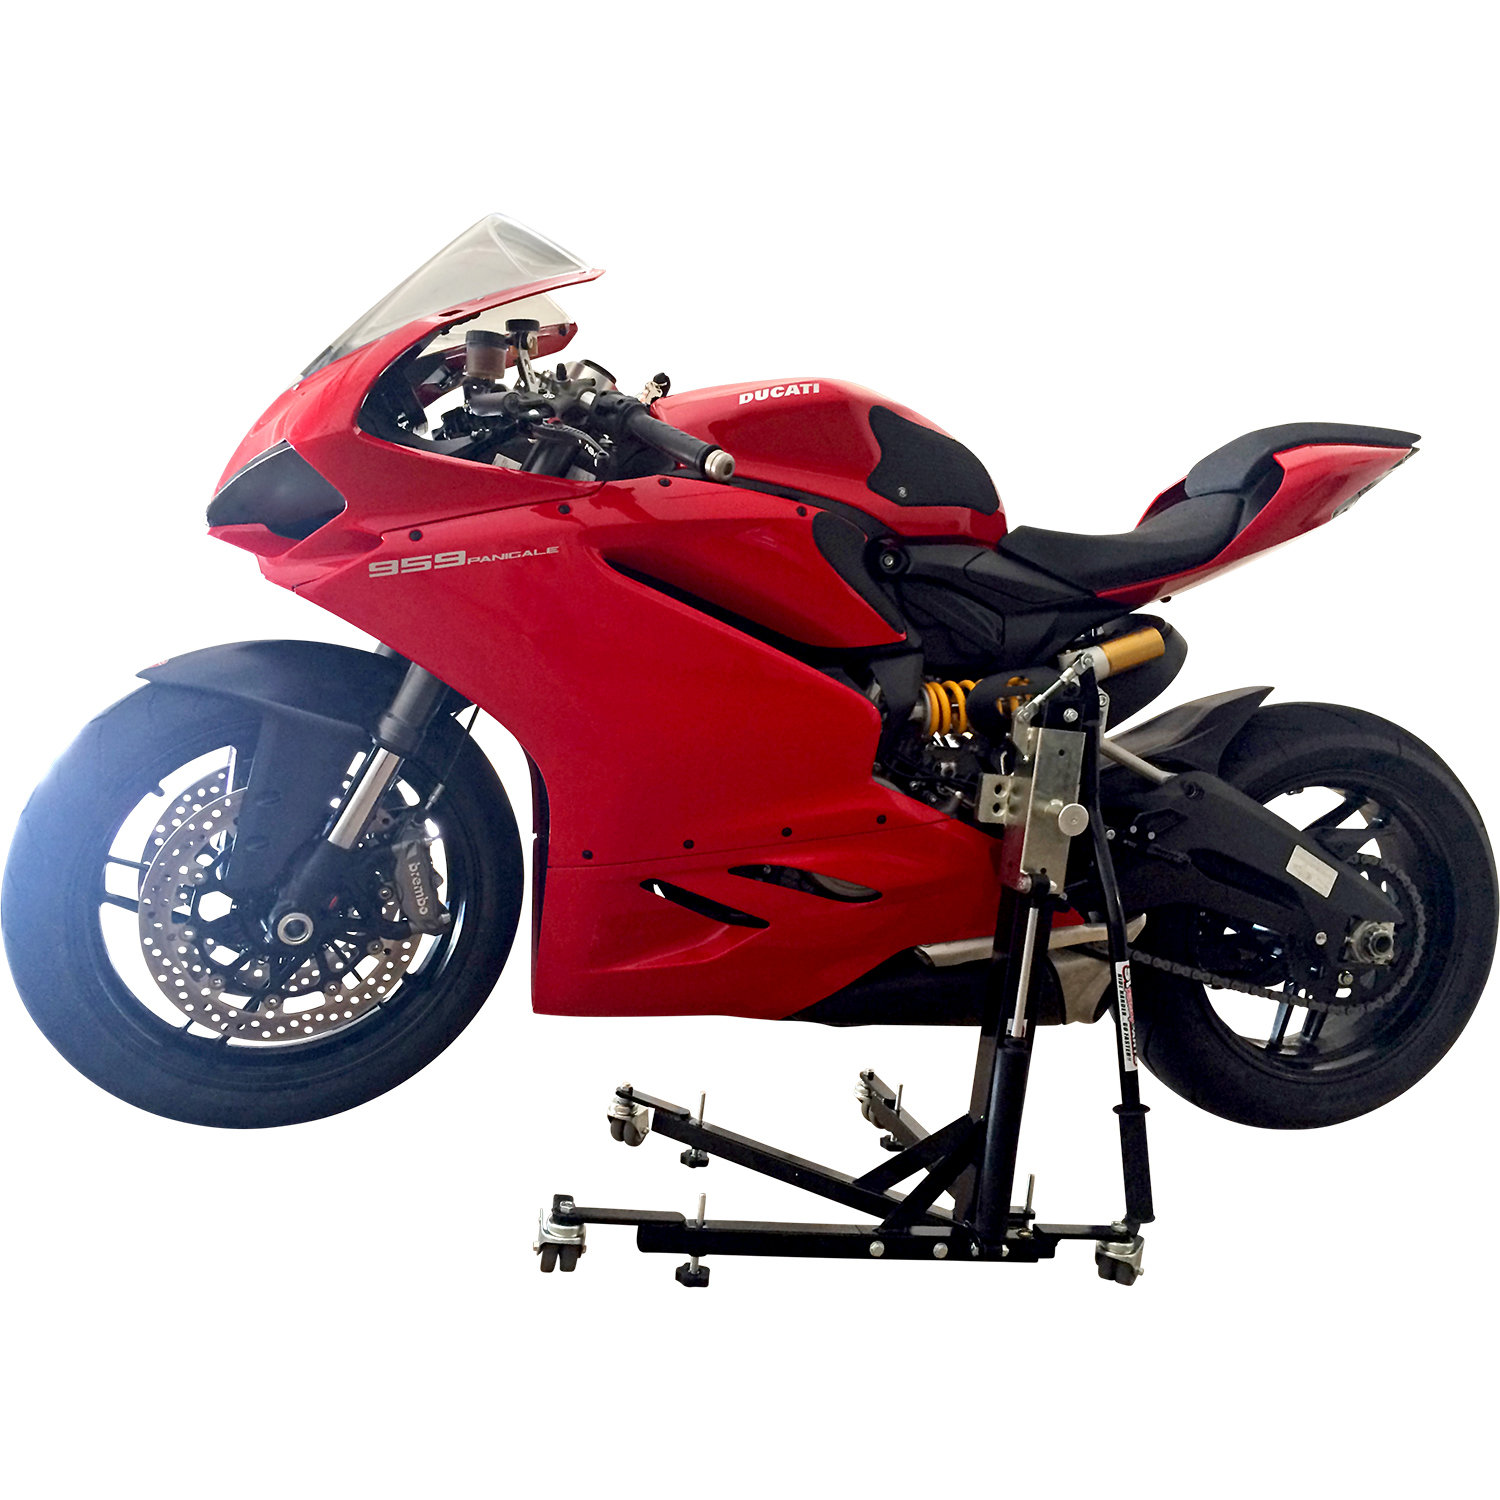 Black Custom Paddock Style Side Lift Stands for Ducati 1199 Panigale Models 00463